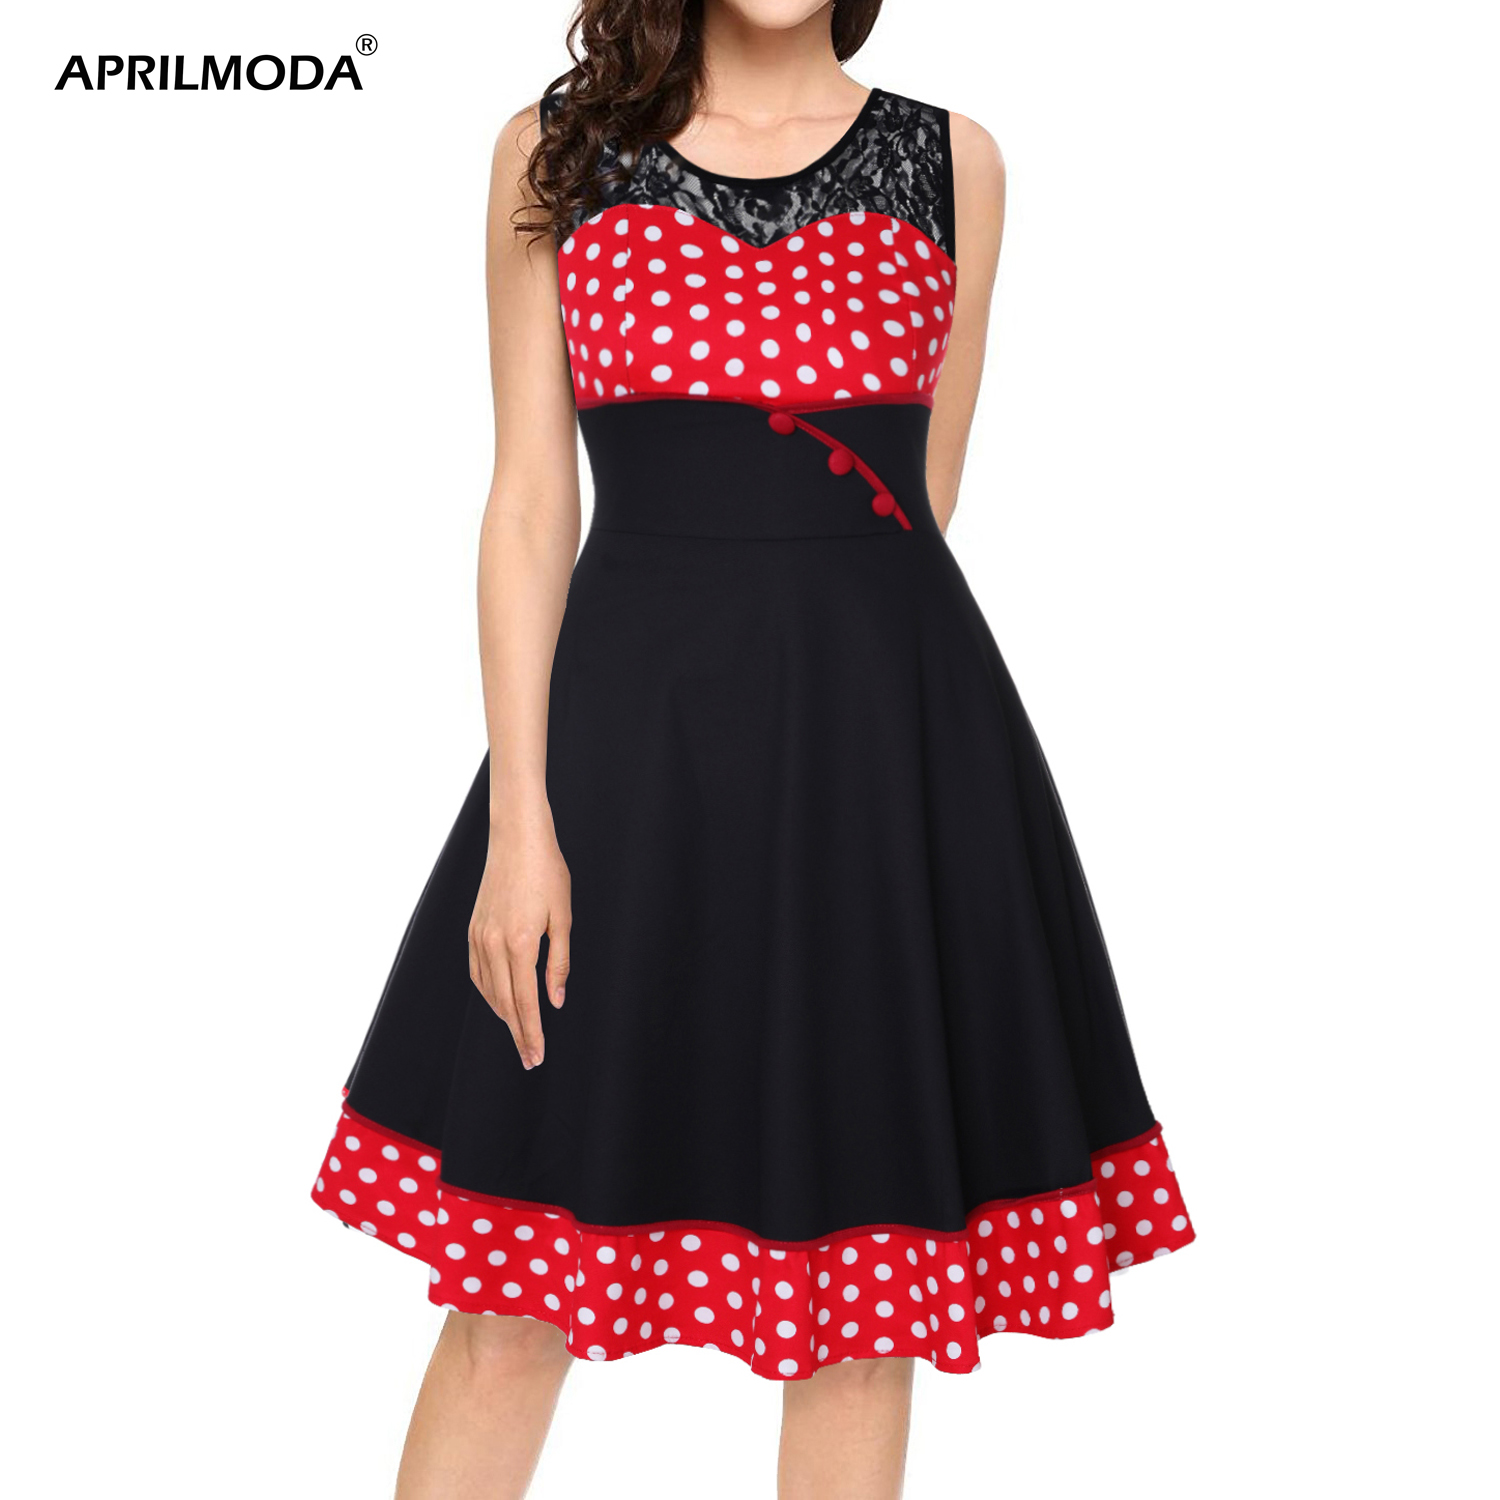 US $14.88 40% OFF|4XL Plus Size Hepburn 50s Dress Polka Dot Printed  Patchwork Lace Vintage Dresses Retro Swing Pin Up Vestidos 1960s Party  Dress-in ...